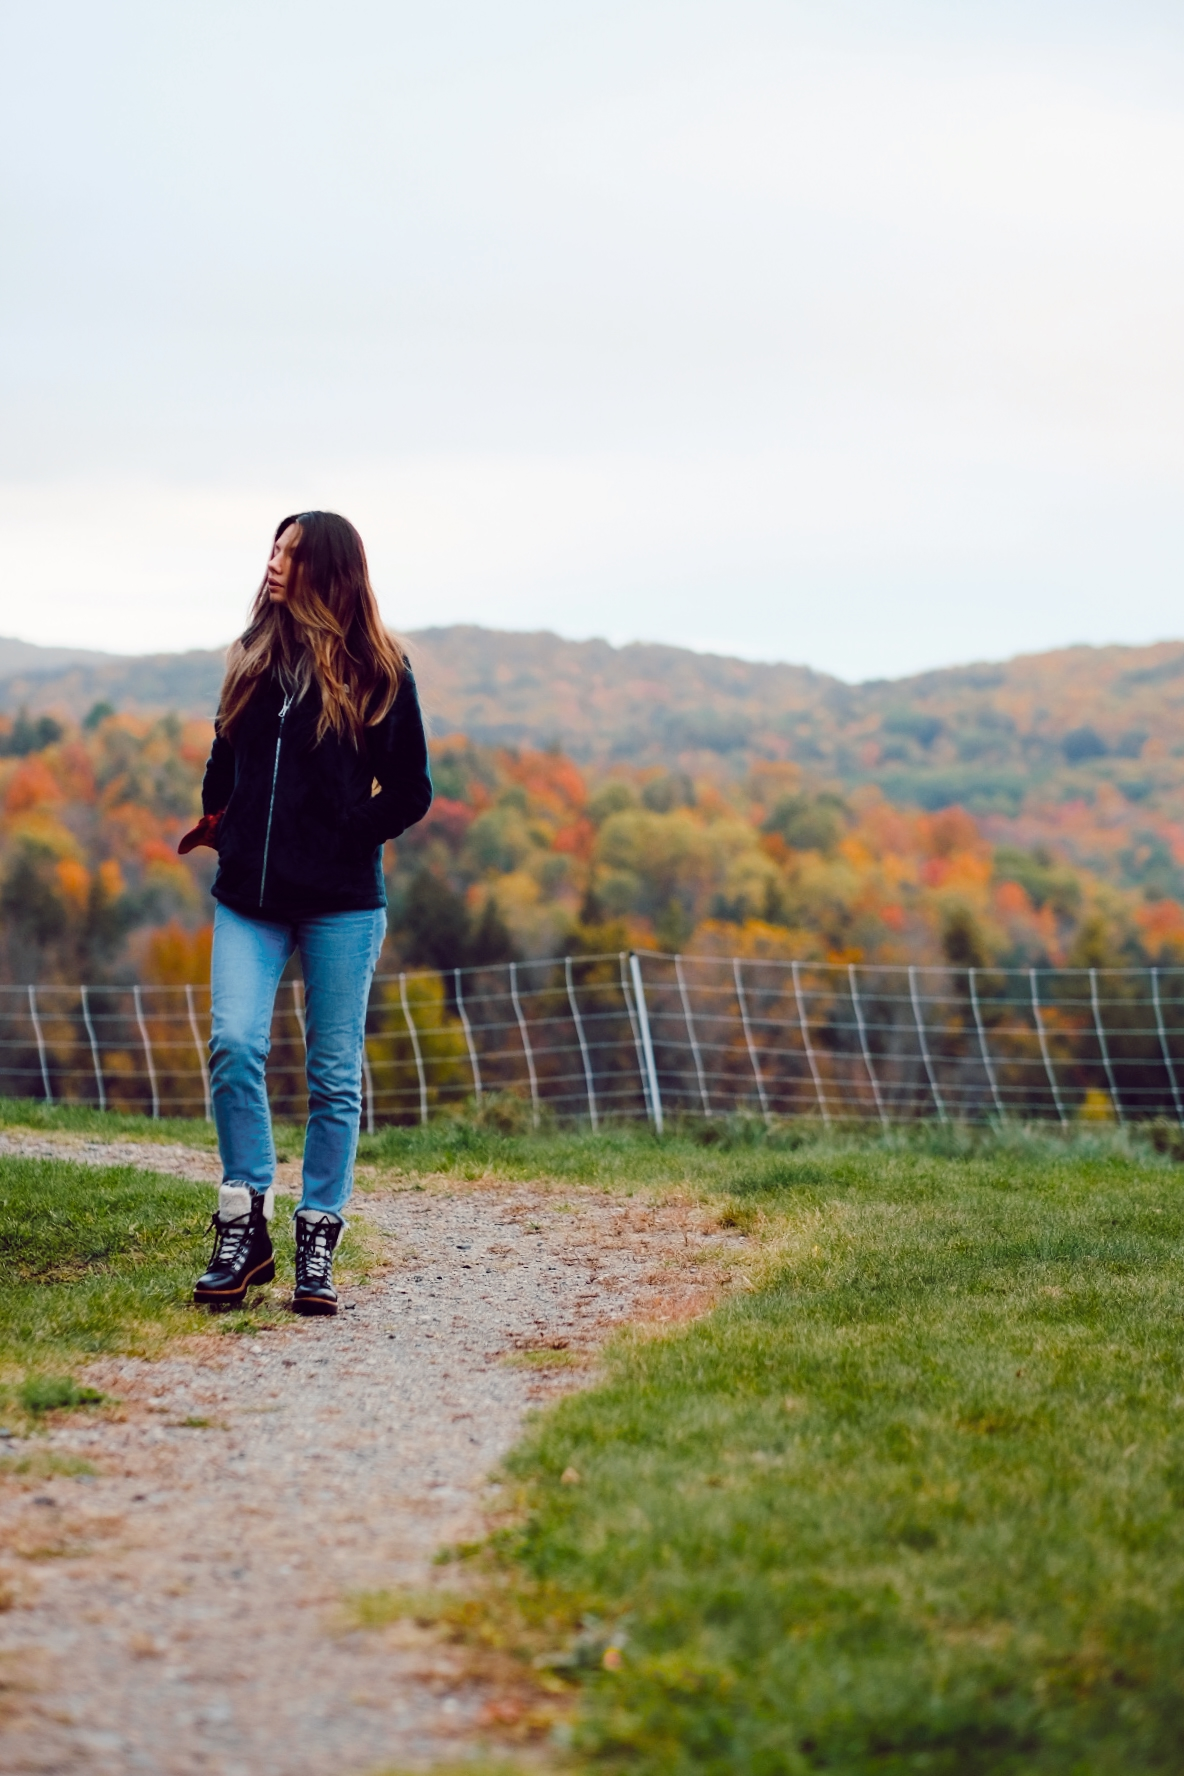 a woman walking in hiking boots, jeans and long brown hair hiking in the fall